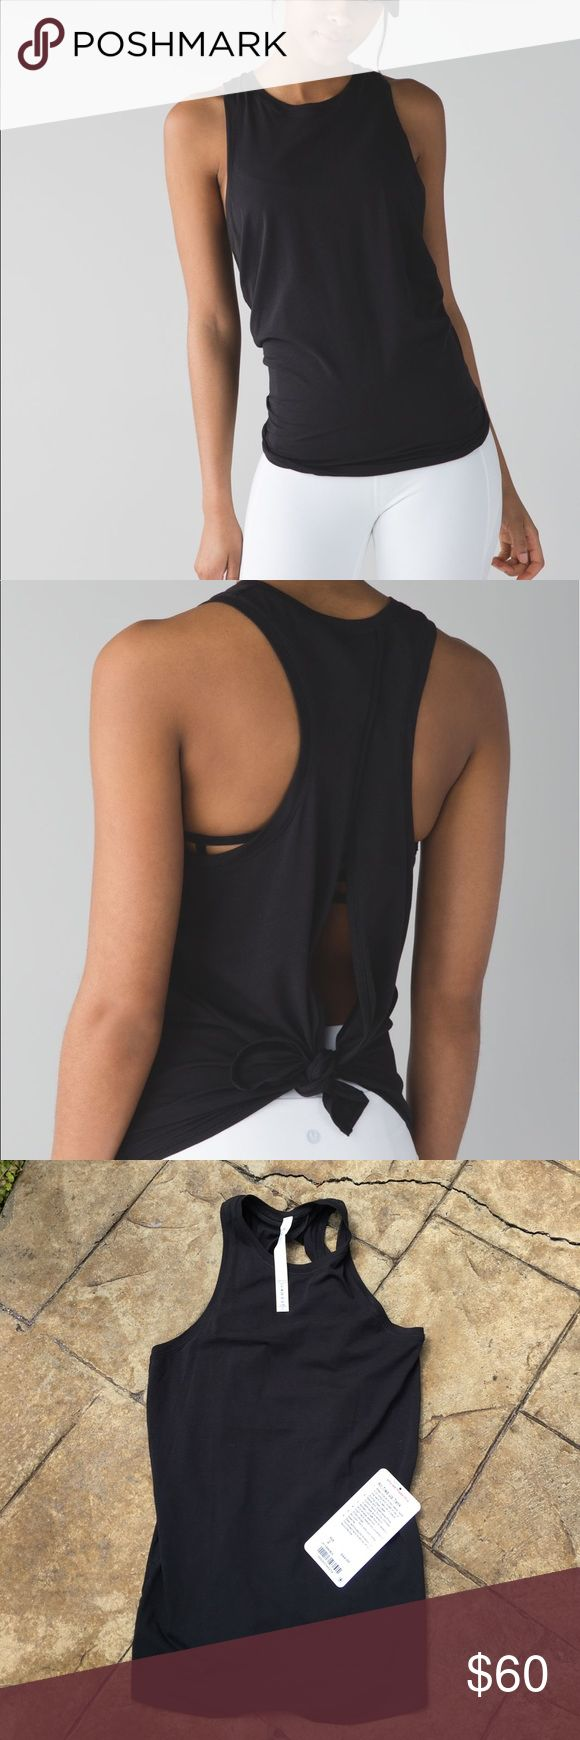 Lululemon All Tied Up Tank, Size 2, NWT'S New with tags, All Tied Up Tank, Size 2. lululemon athletica Tops Tank Tops